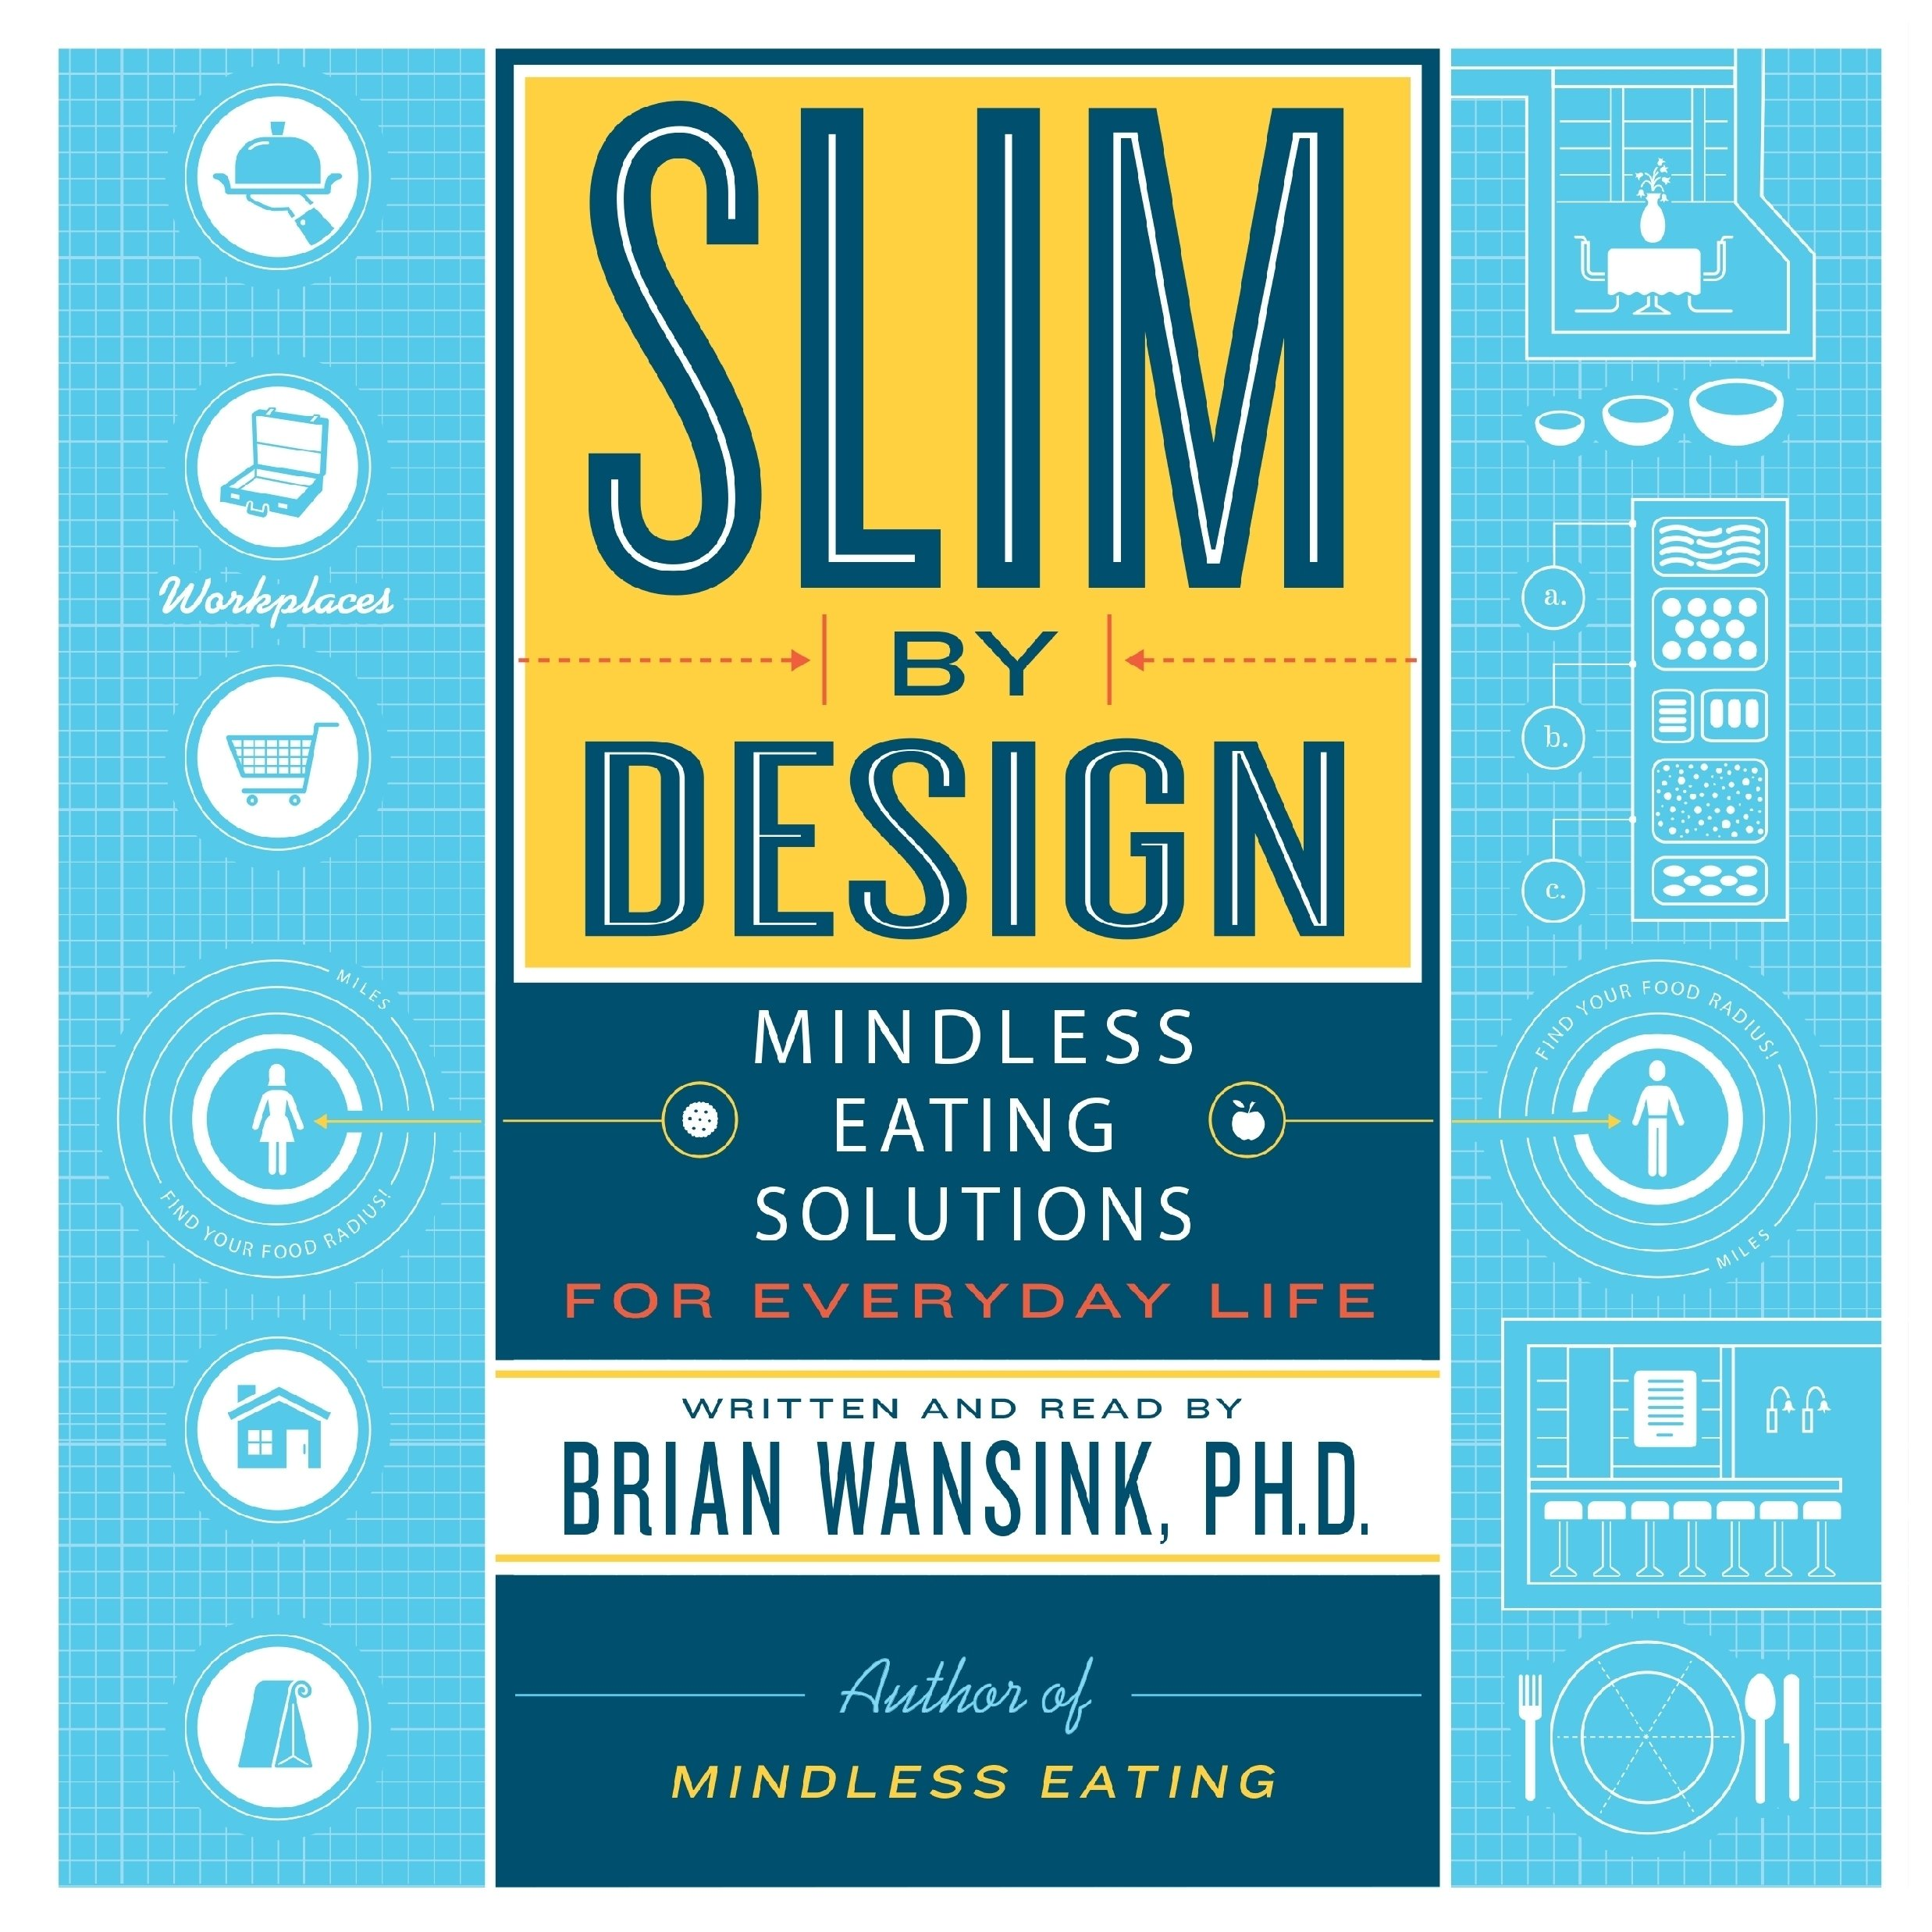 Mindless Eating Solutions for Everyday Life - Brian Wansink, Ph.D.